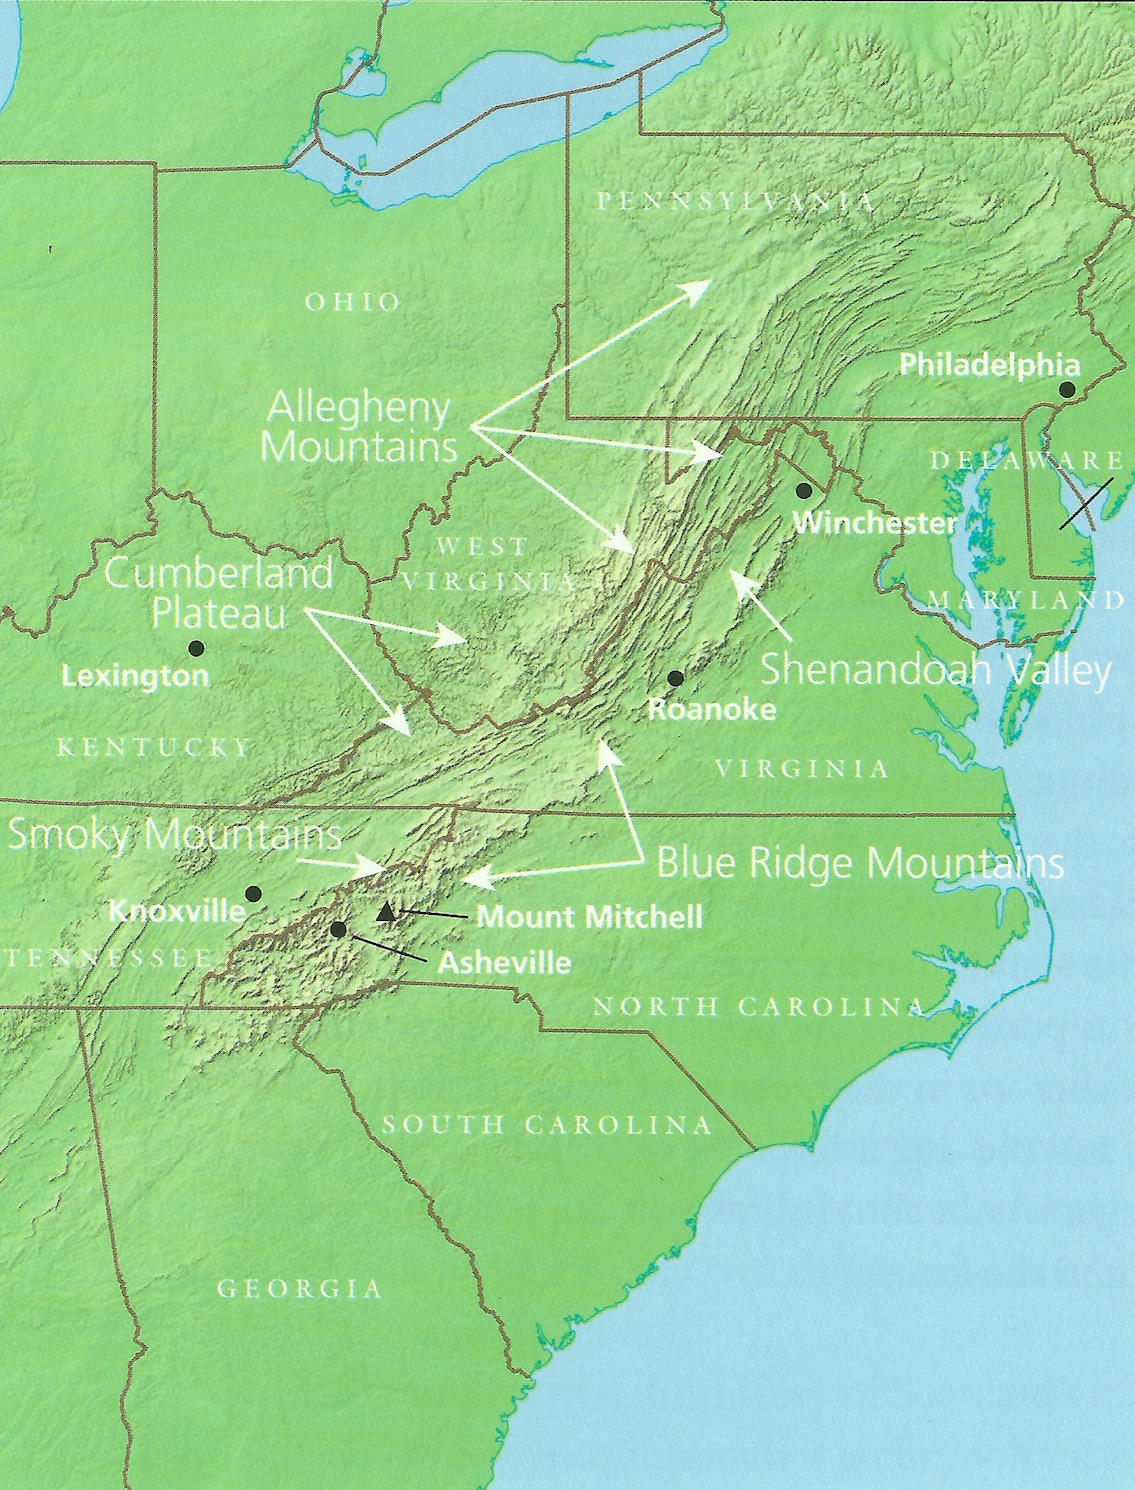 The Southern Appalachian Region | American Music: Roots and ... on map of greater los angeles area, map of indonesian archipelago, map of kansas city metro area, map of 48 contiguous states, map of northern tier, map of the canadian shield, map of southeastern united states, map of eastern world, map of united sates, map of southwestern united states, map of upper peninsula of michigan, map of lower 48 states, map of midwestern united states, map of kansas city metropolitan area, map of contiguous united states, map of tri-state area, map of chesapeake bay watershed, map of tokyo metropolitan area, map of mid-atlantic states, map of washington, dc metropolitan area,